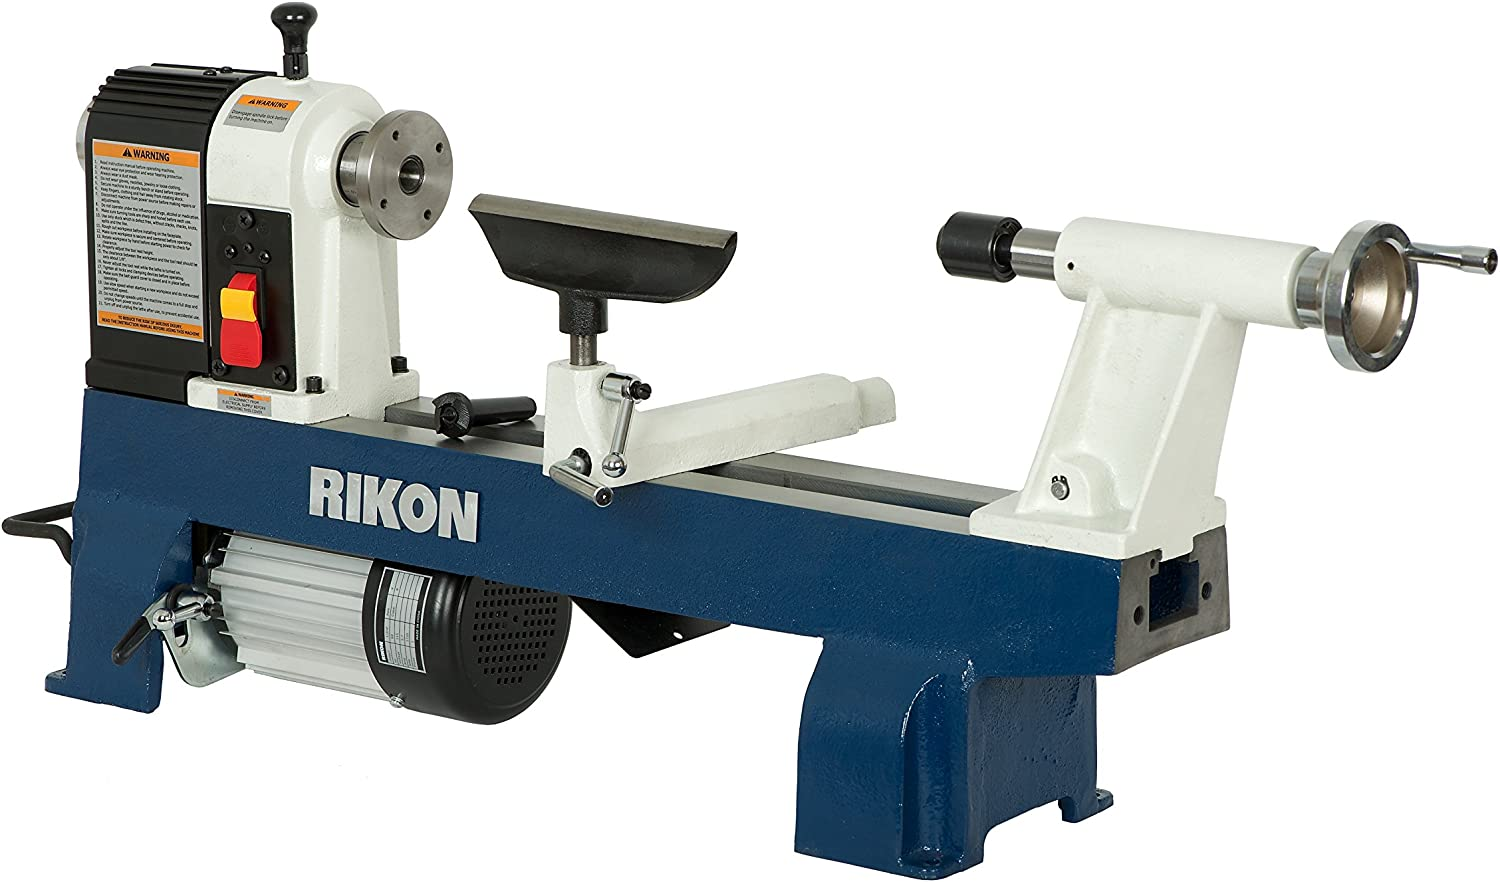 RIKON 70-100 12-by-16-Inch Mini Best Wood Lathe for Turning Bowls